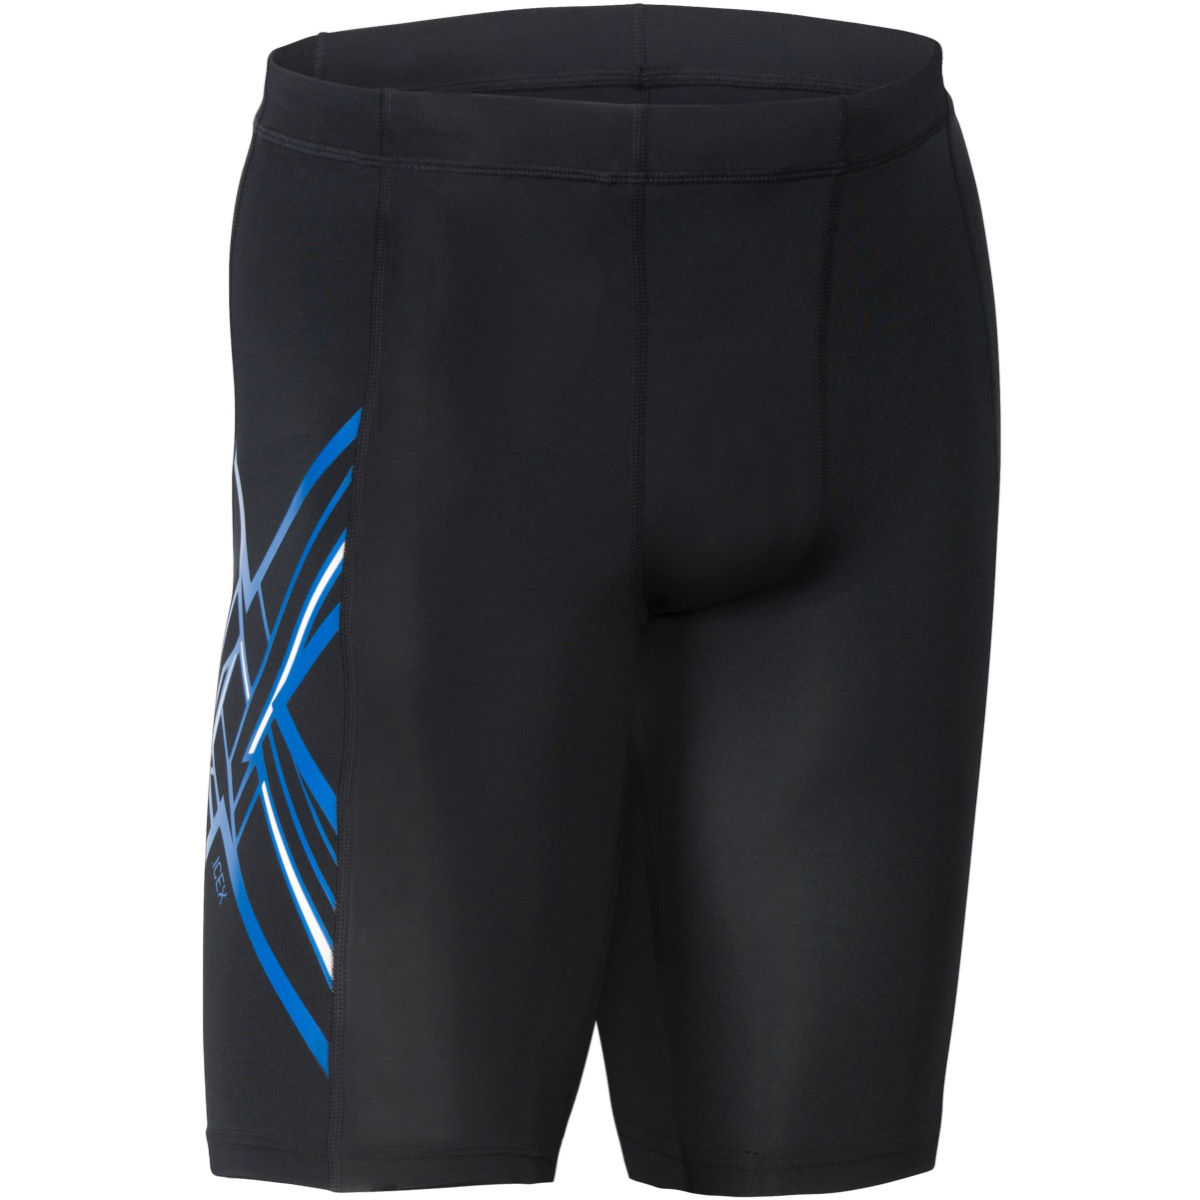 2XU Ice X Compression Short - Mallas cortas de compresión